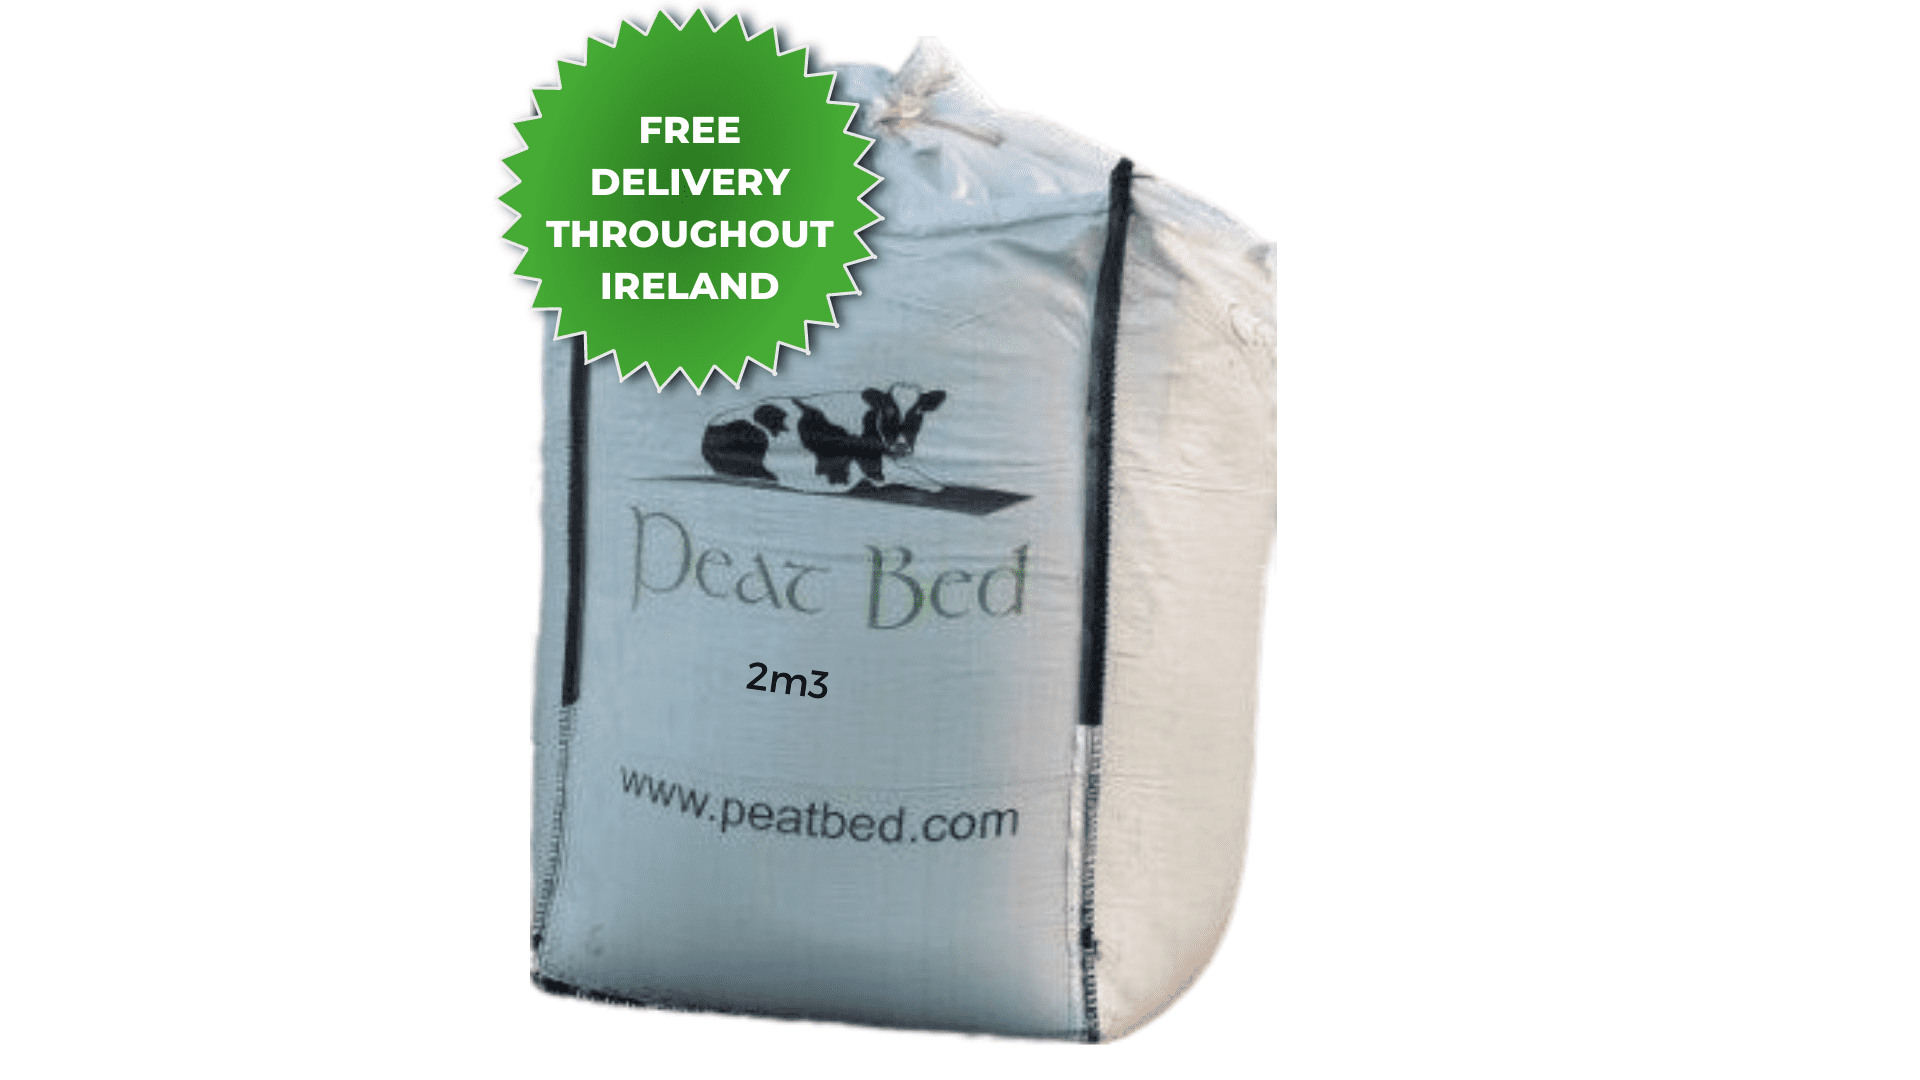 Peat Bed Horse Bed 2m3 Bag- FREE DELIVERY